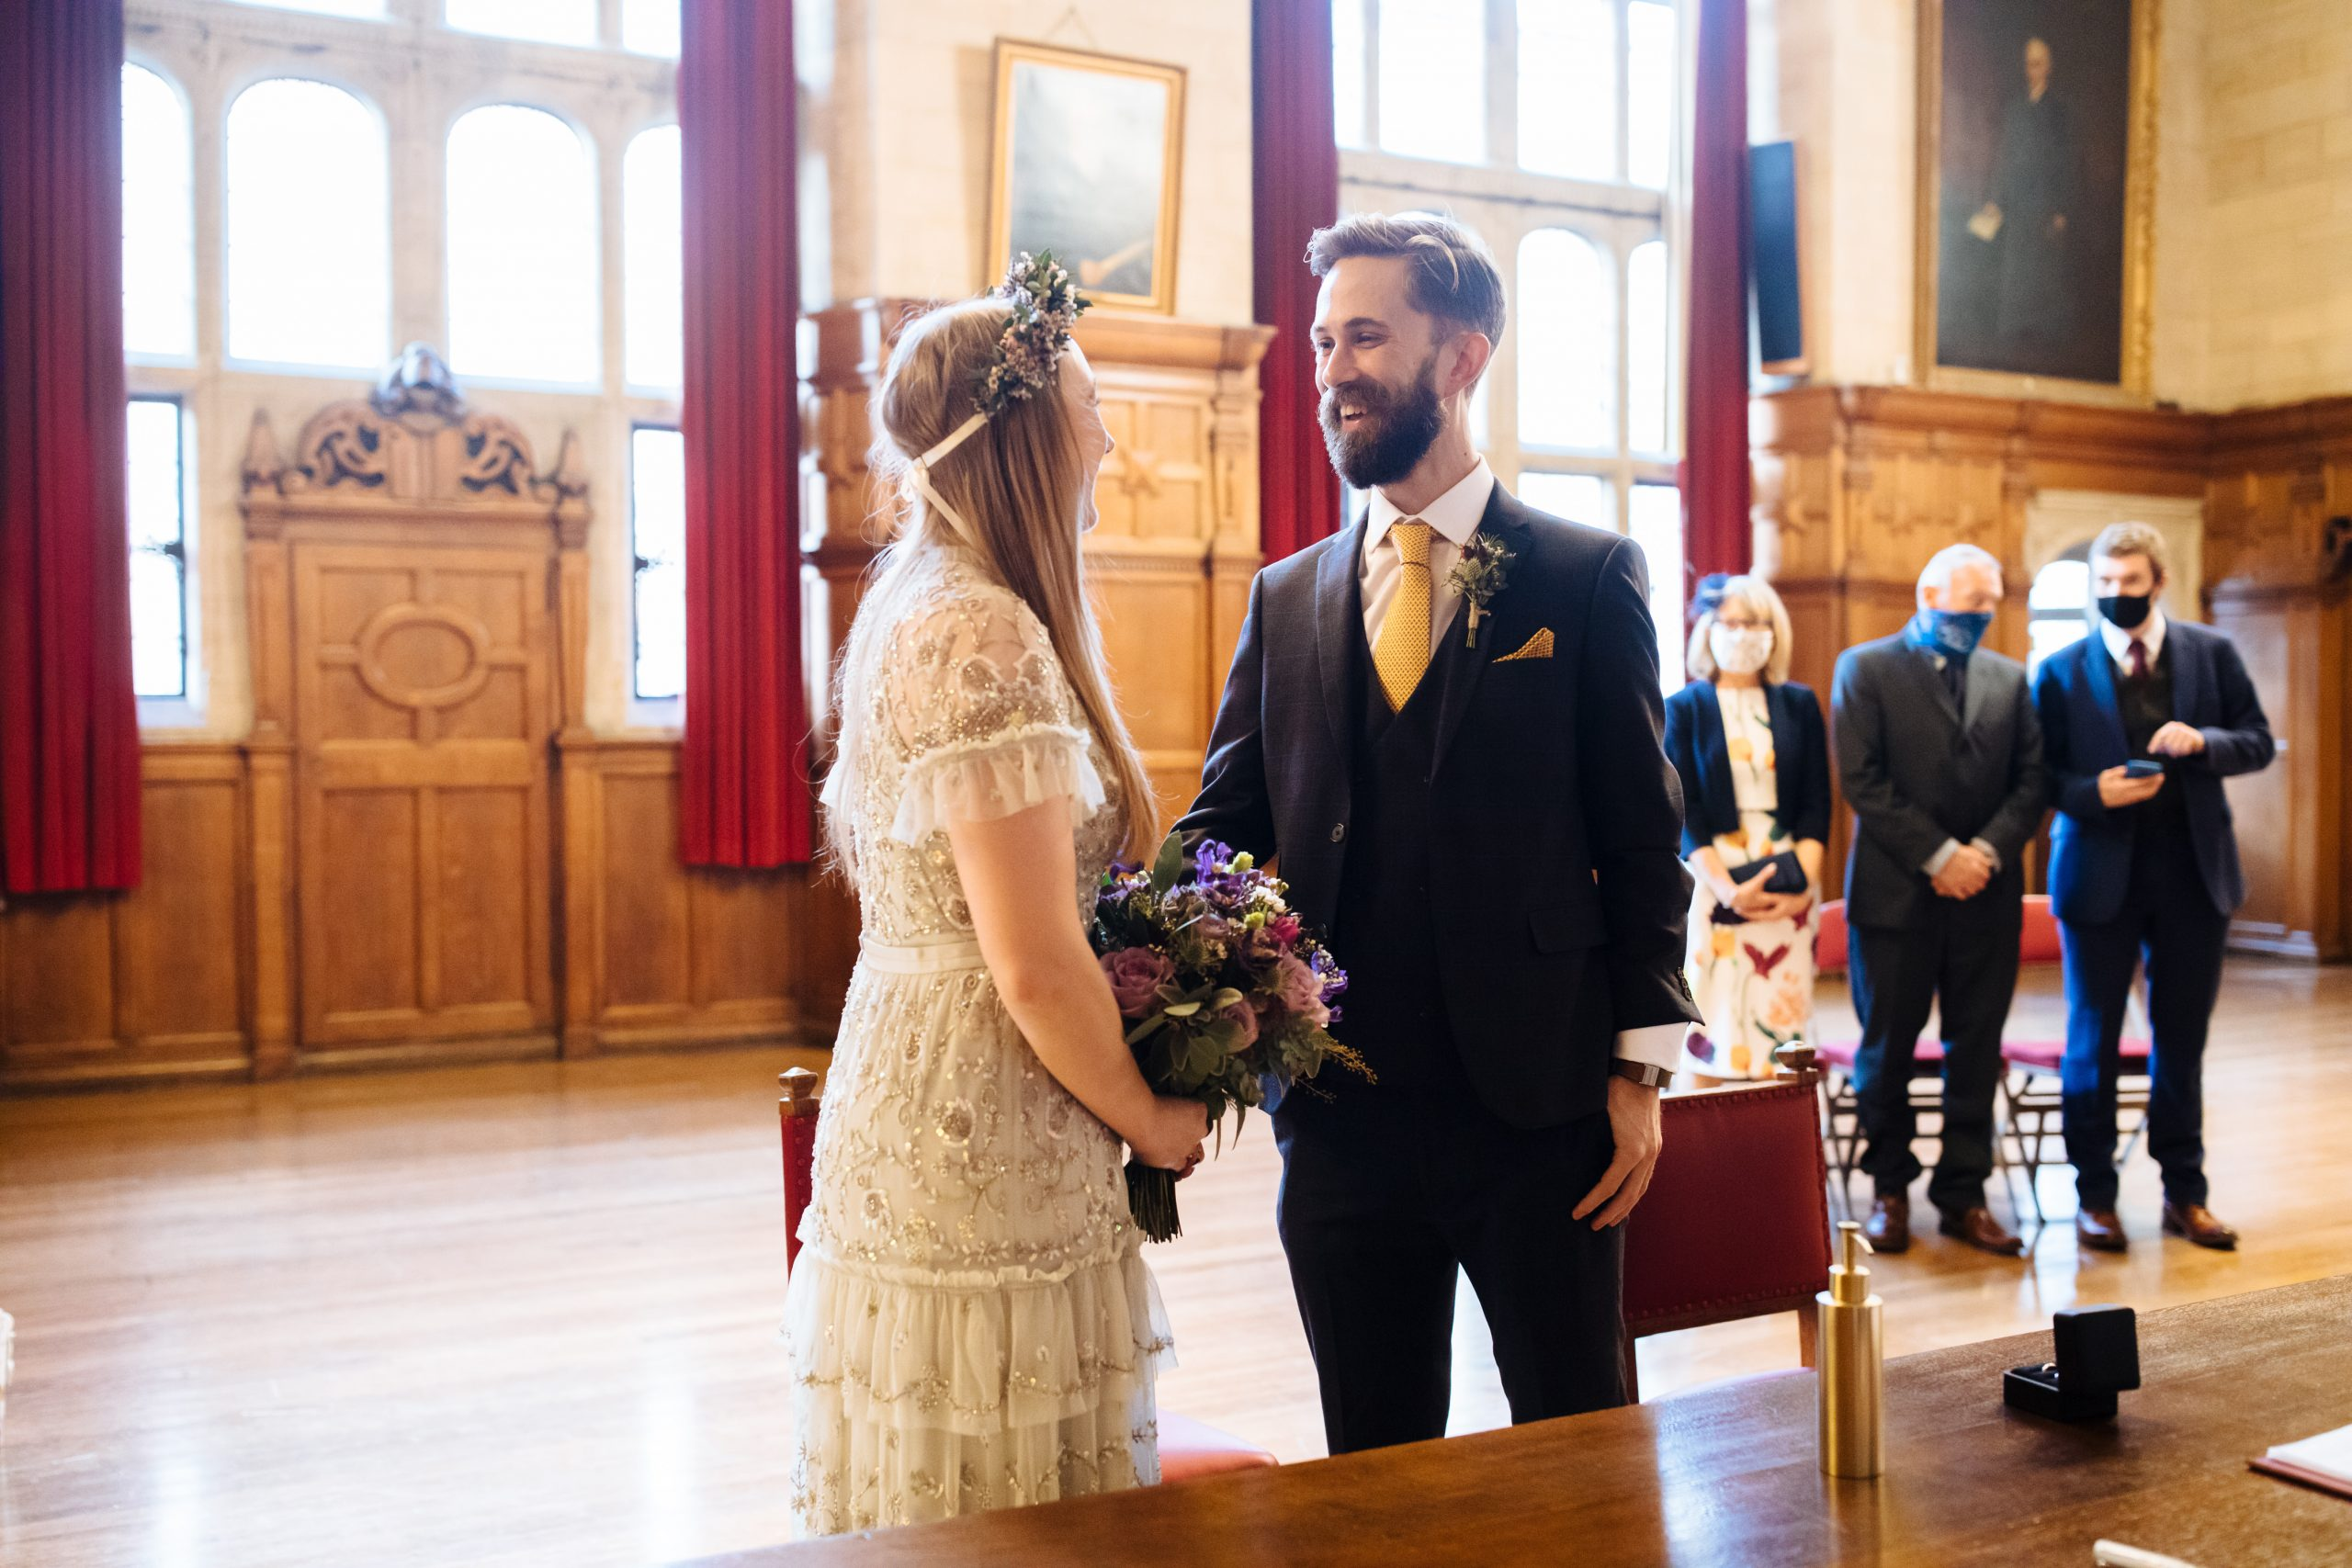 groom seeing bride for the first time at Oxford town hall wedding ceremony